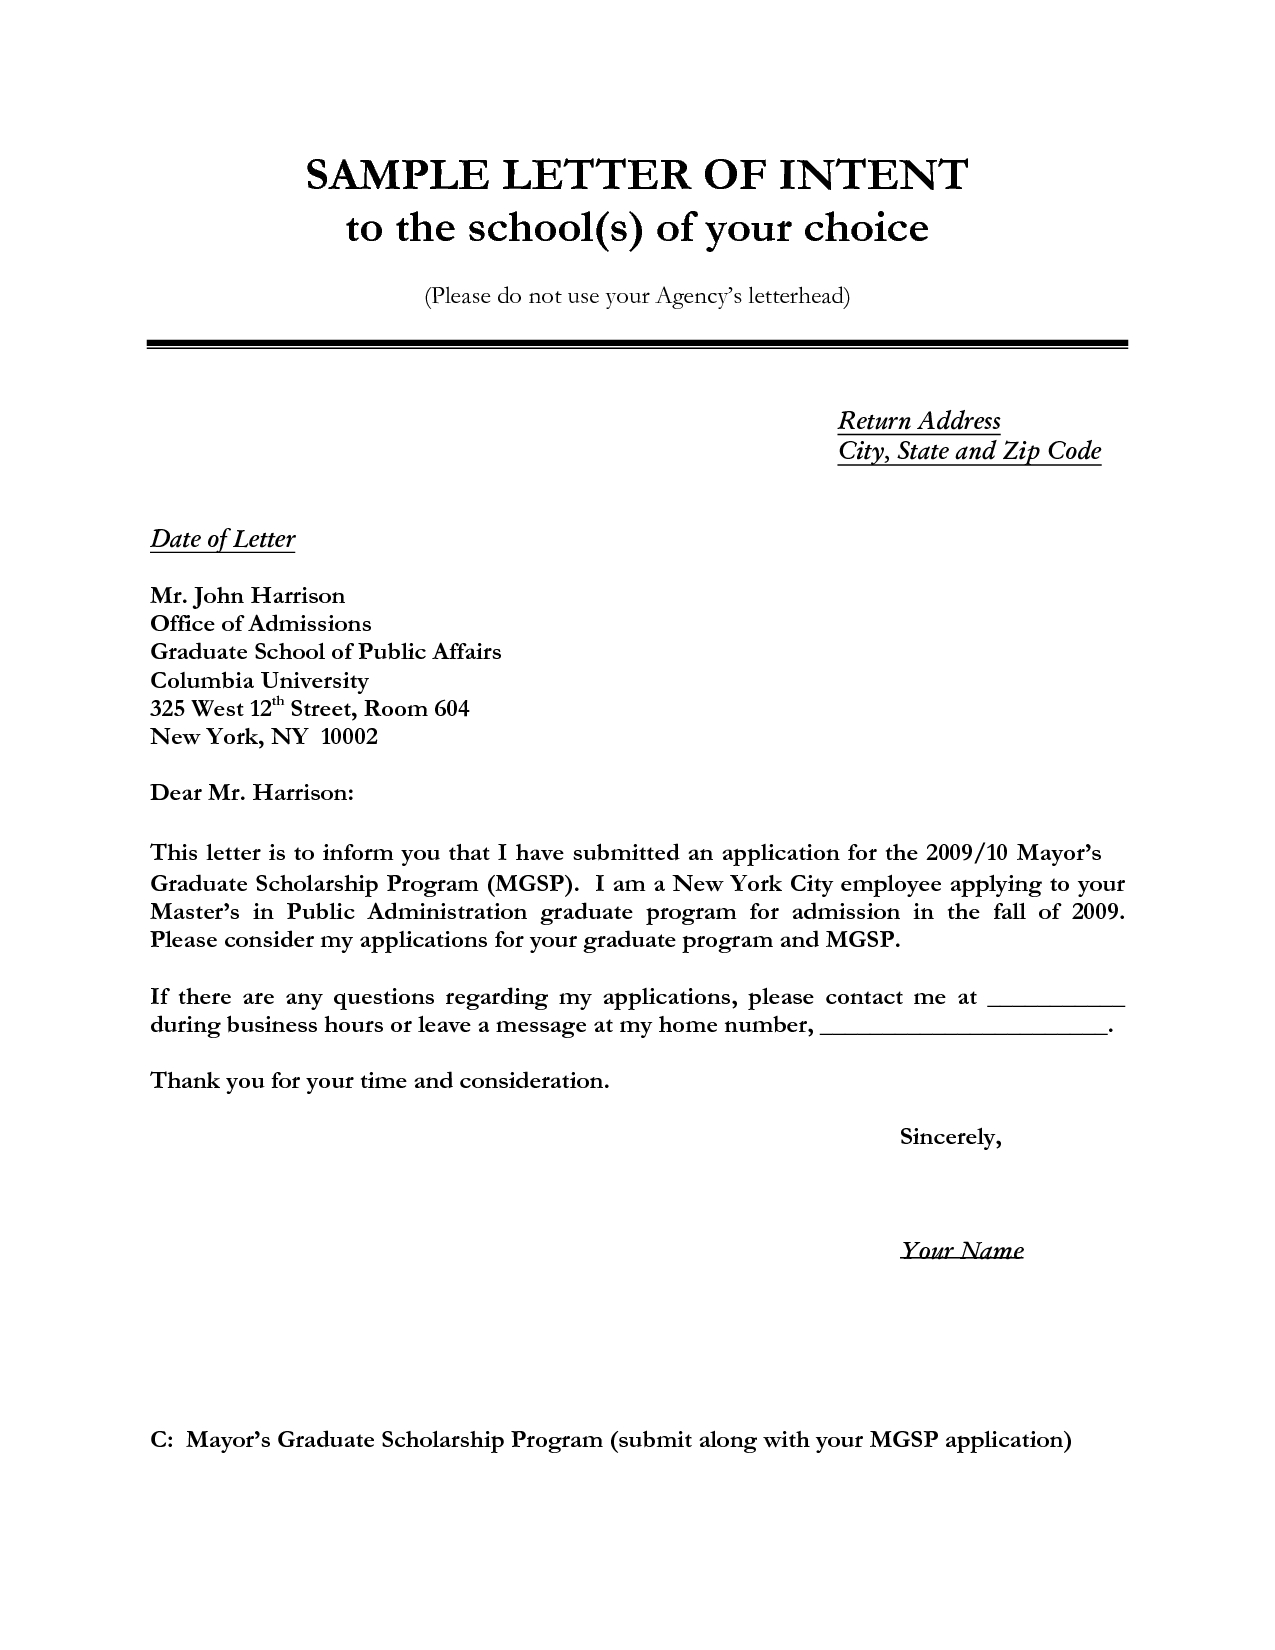 rent free letter template for mortgage Collection-Letter of intent sample 20-f